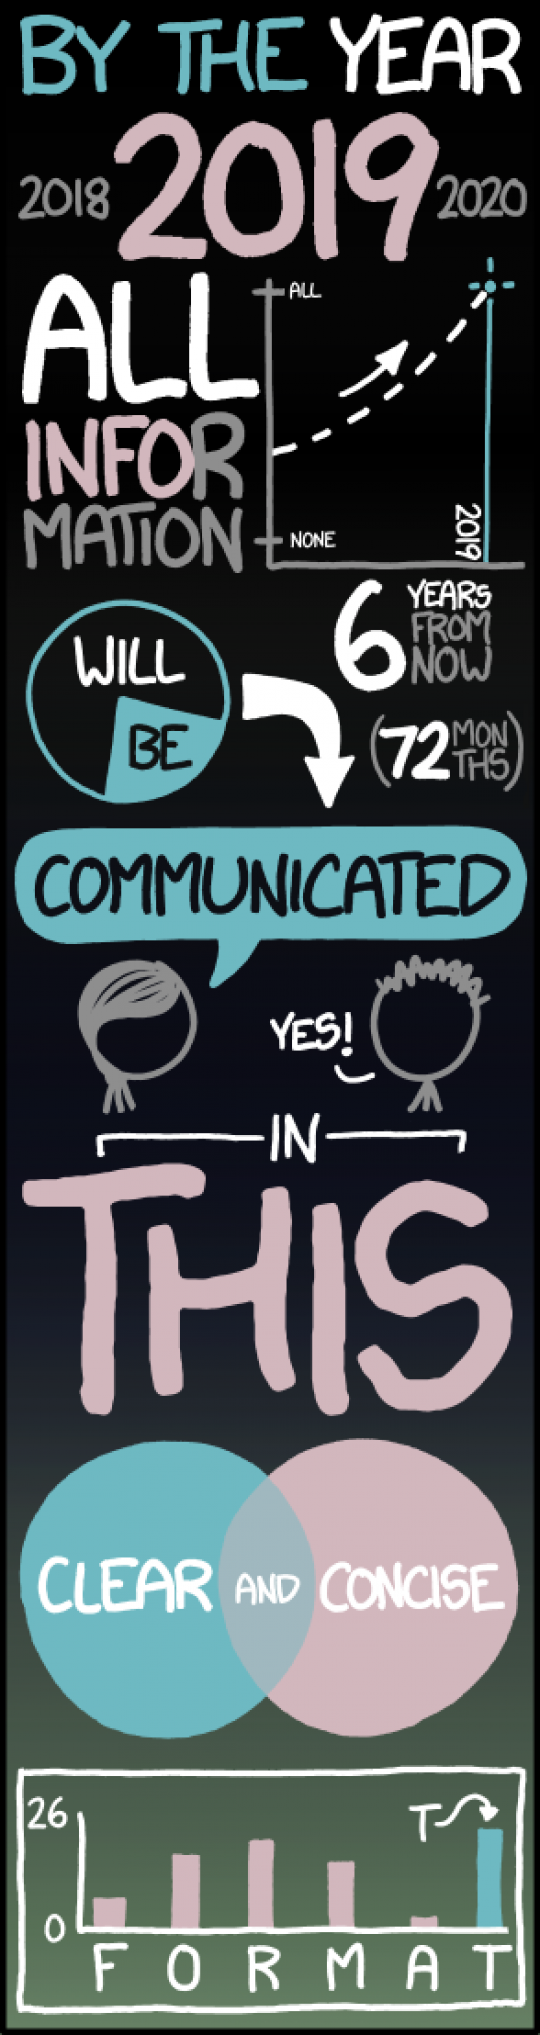 How All Information Will Be Communicated